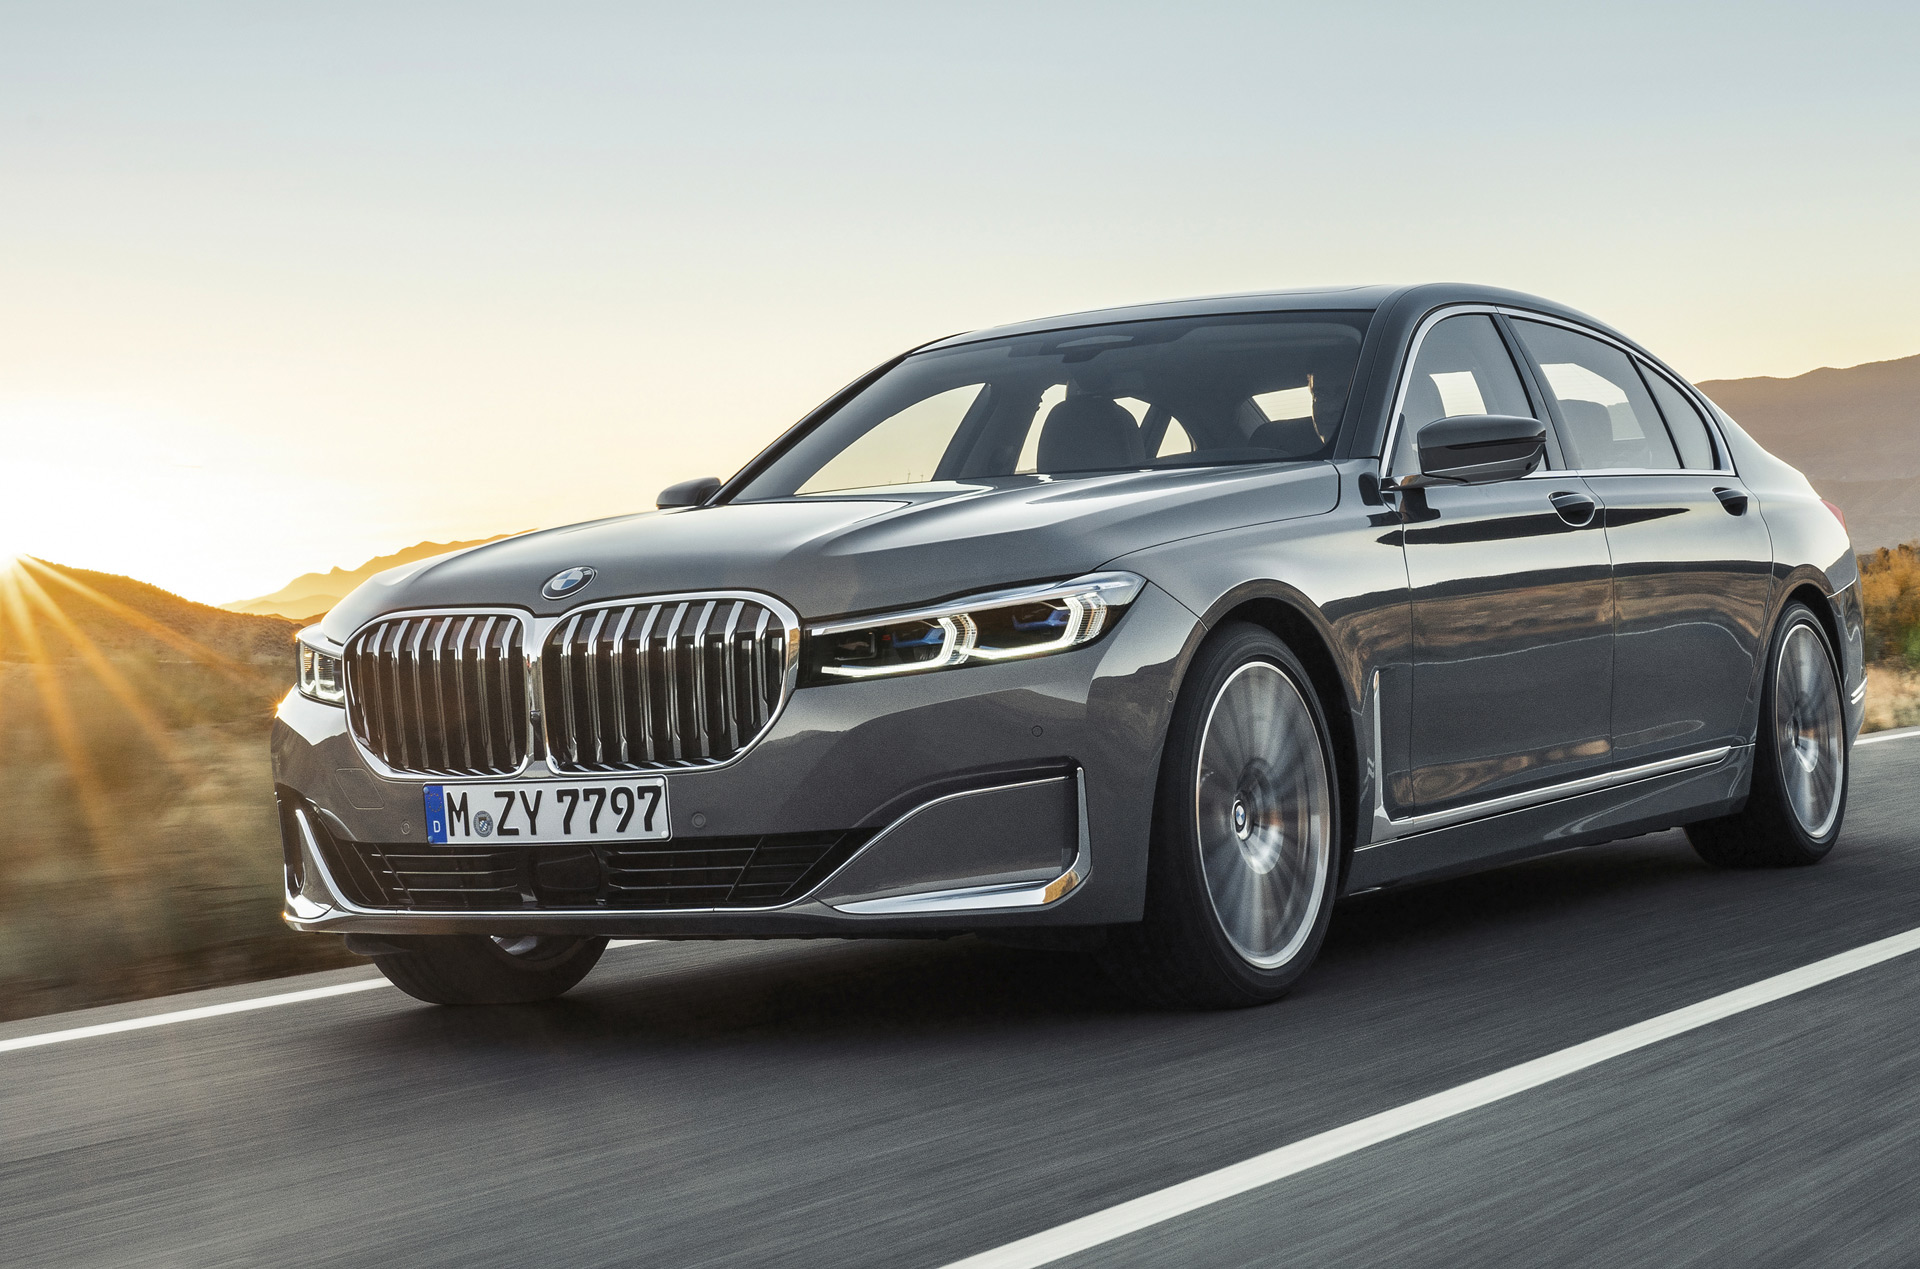 90 Best 2020 BMW 7 Series Specs and Review